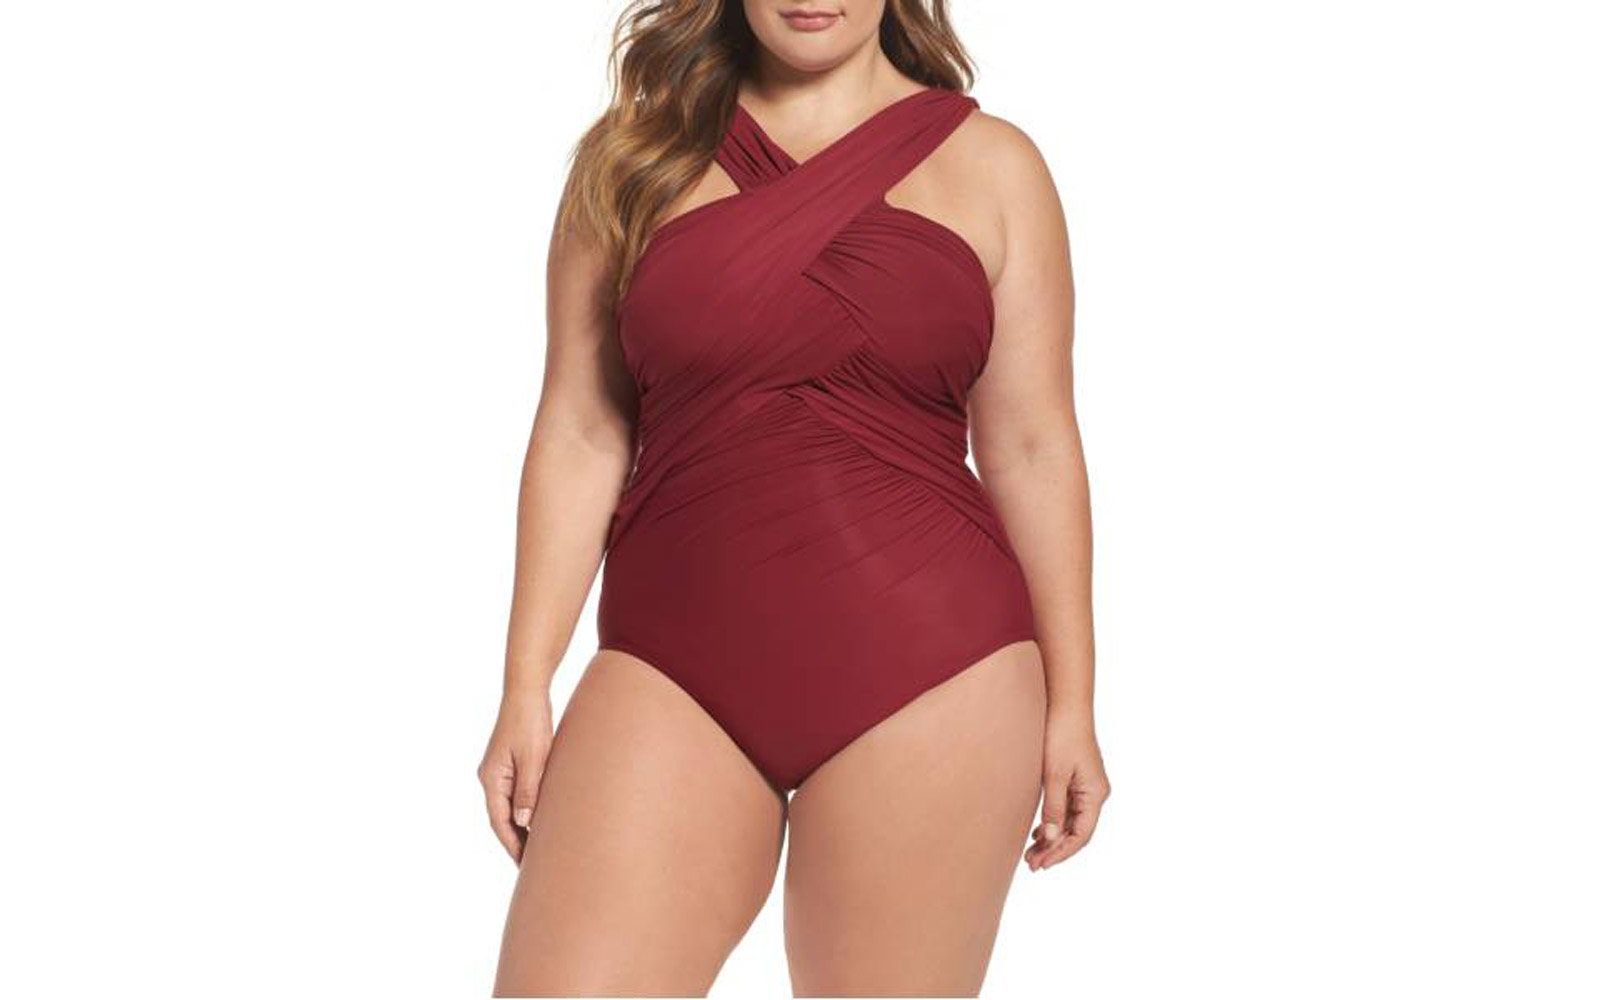 Nordstrom Swimsuit - Miraclesuit